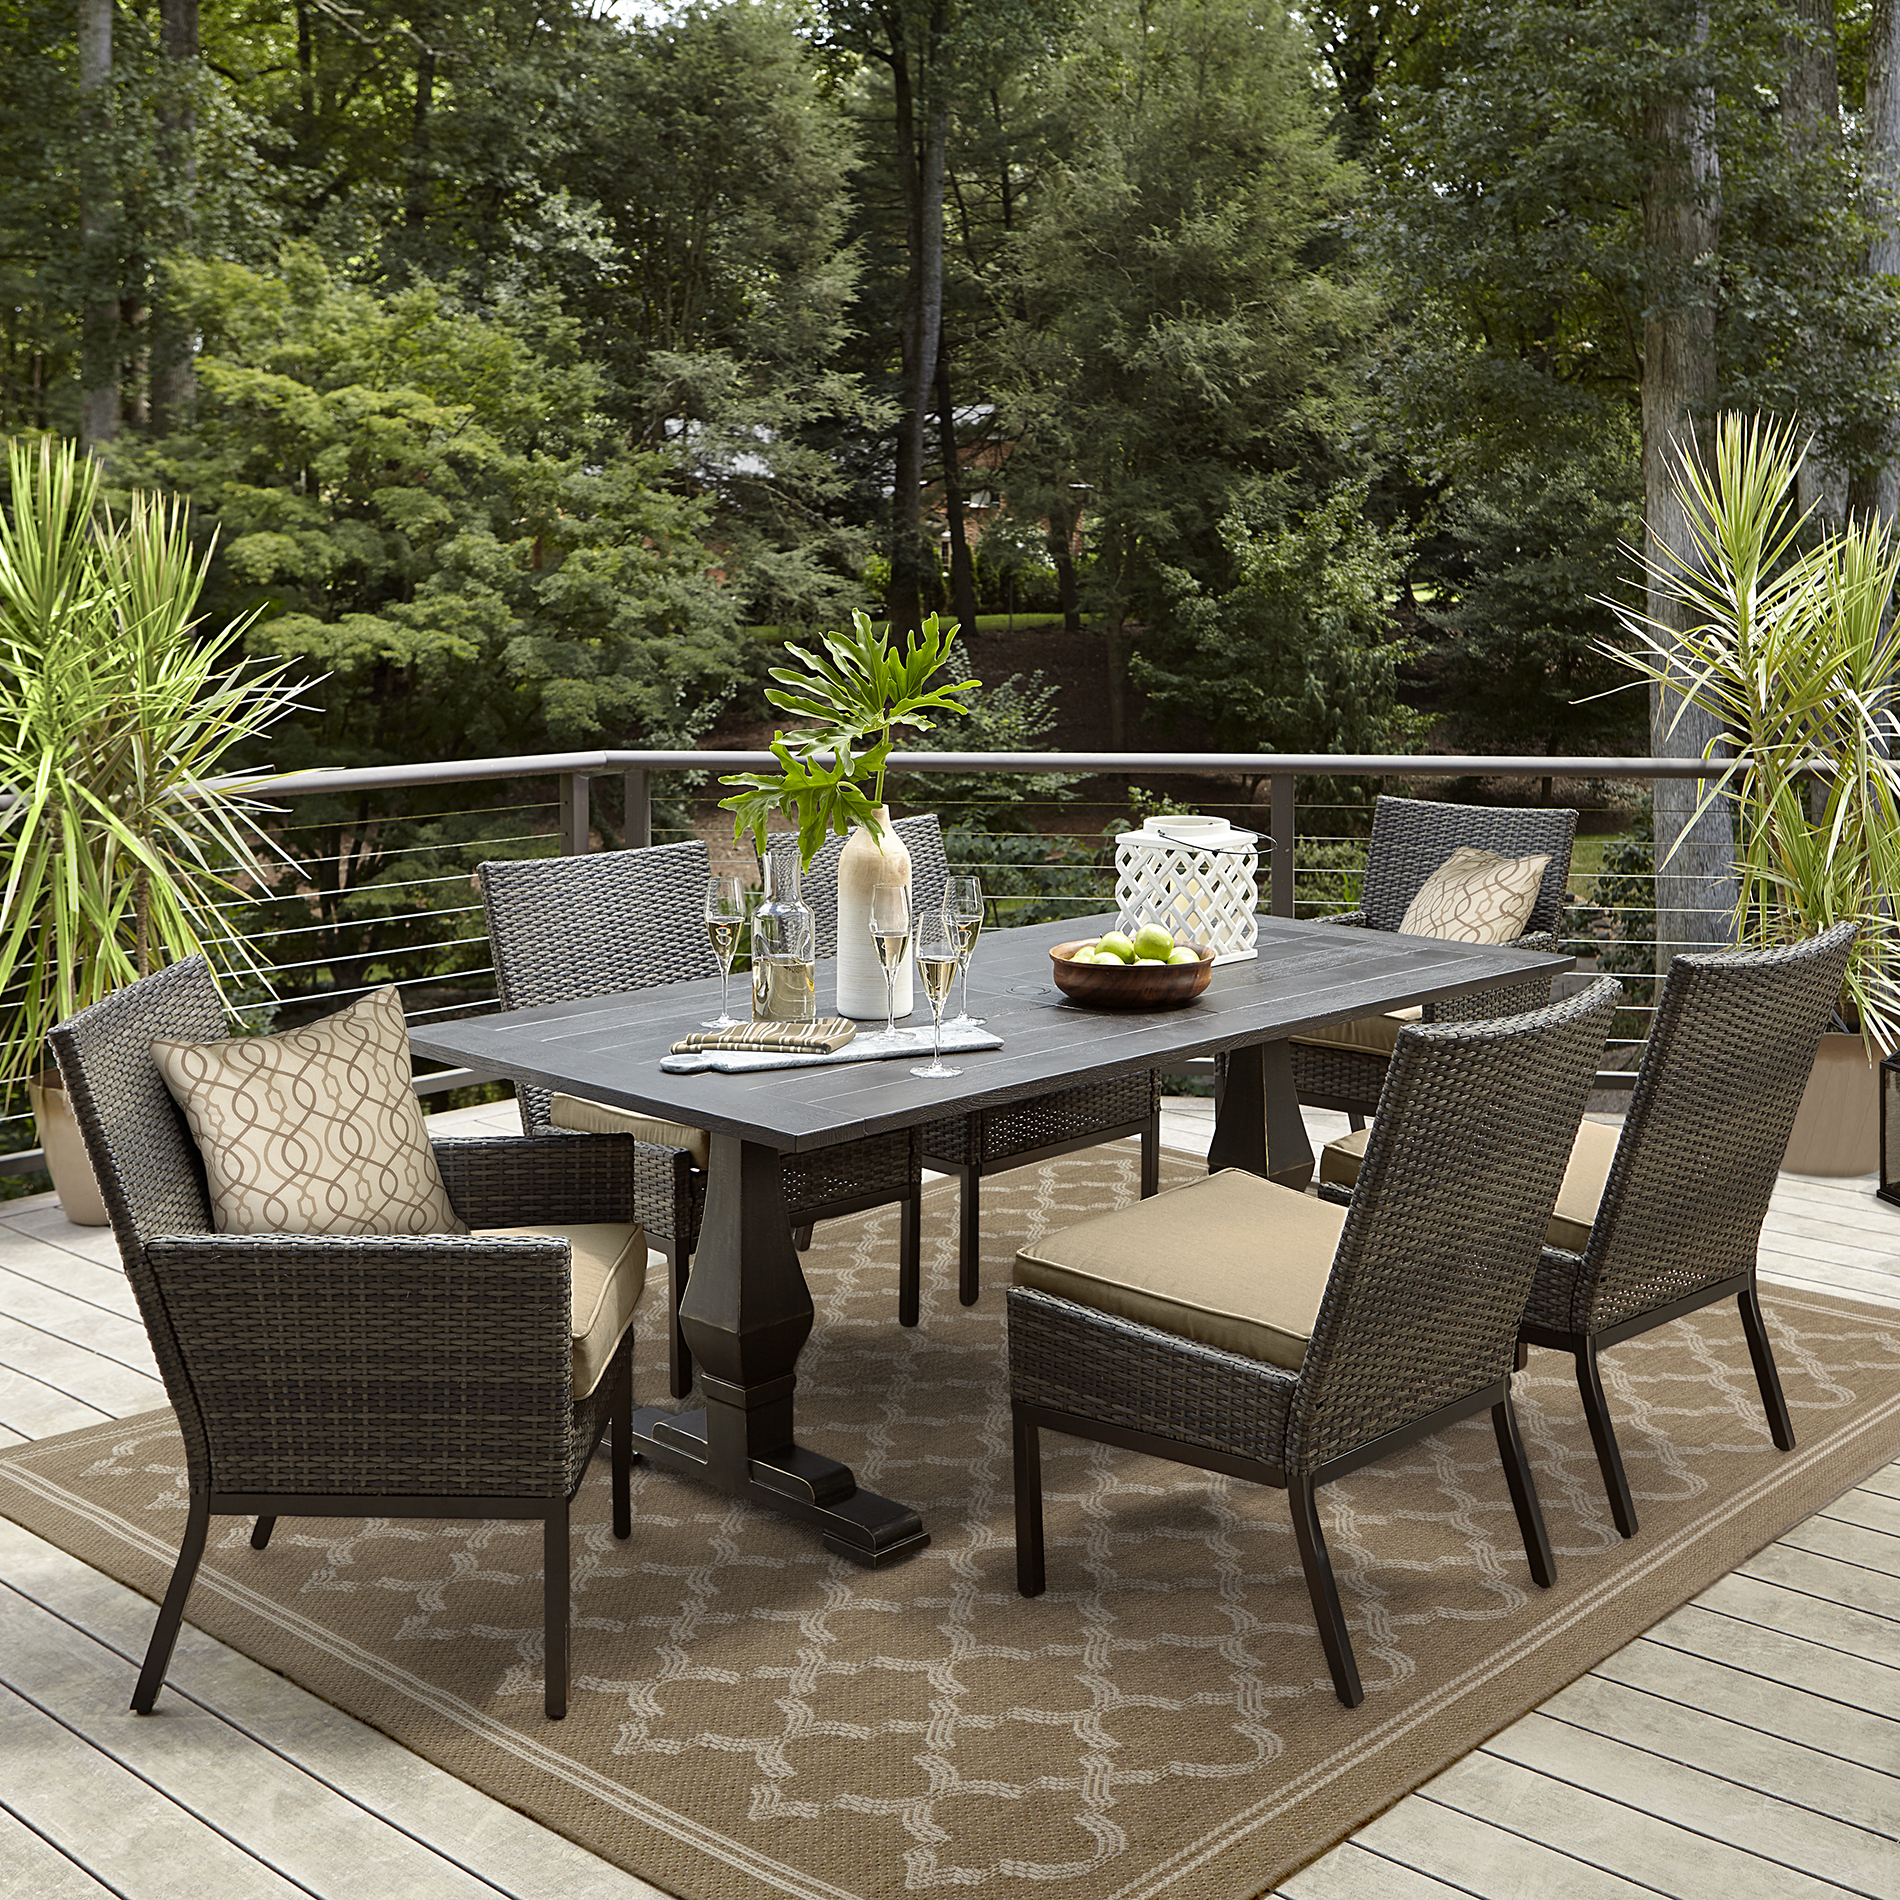 Outdoor Dining Grand Resort Monterey Outdoor Dining Table